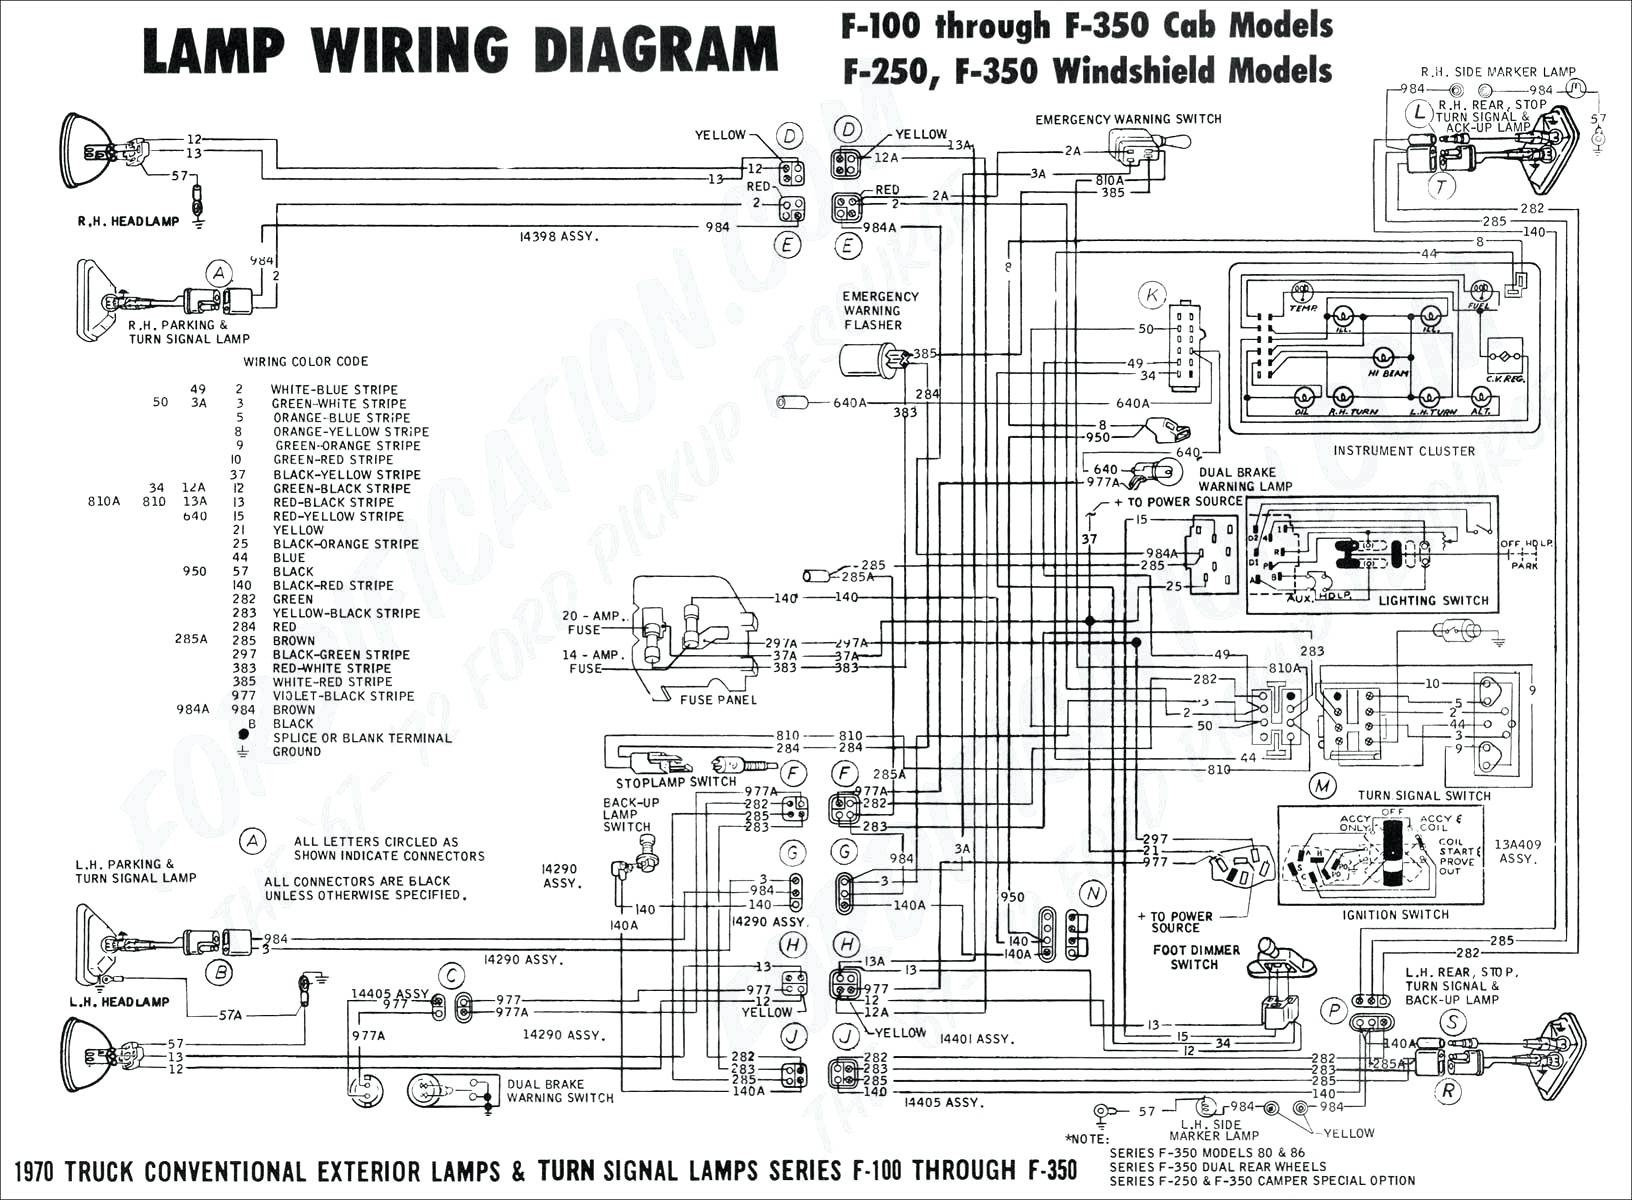 7 Way Rv Plug Diagram - Wiring Diagram Online - Ford Trailer Wiring Diagram 7 Way